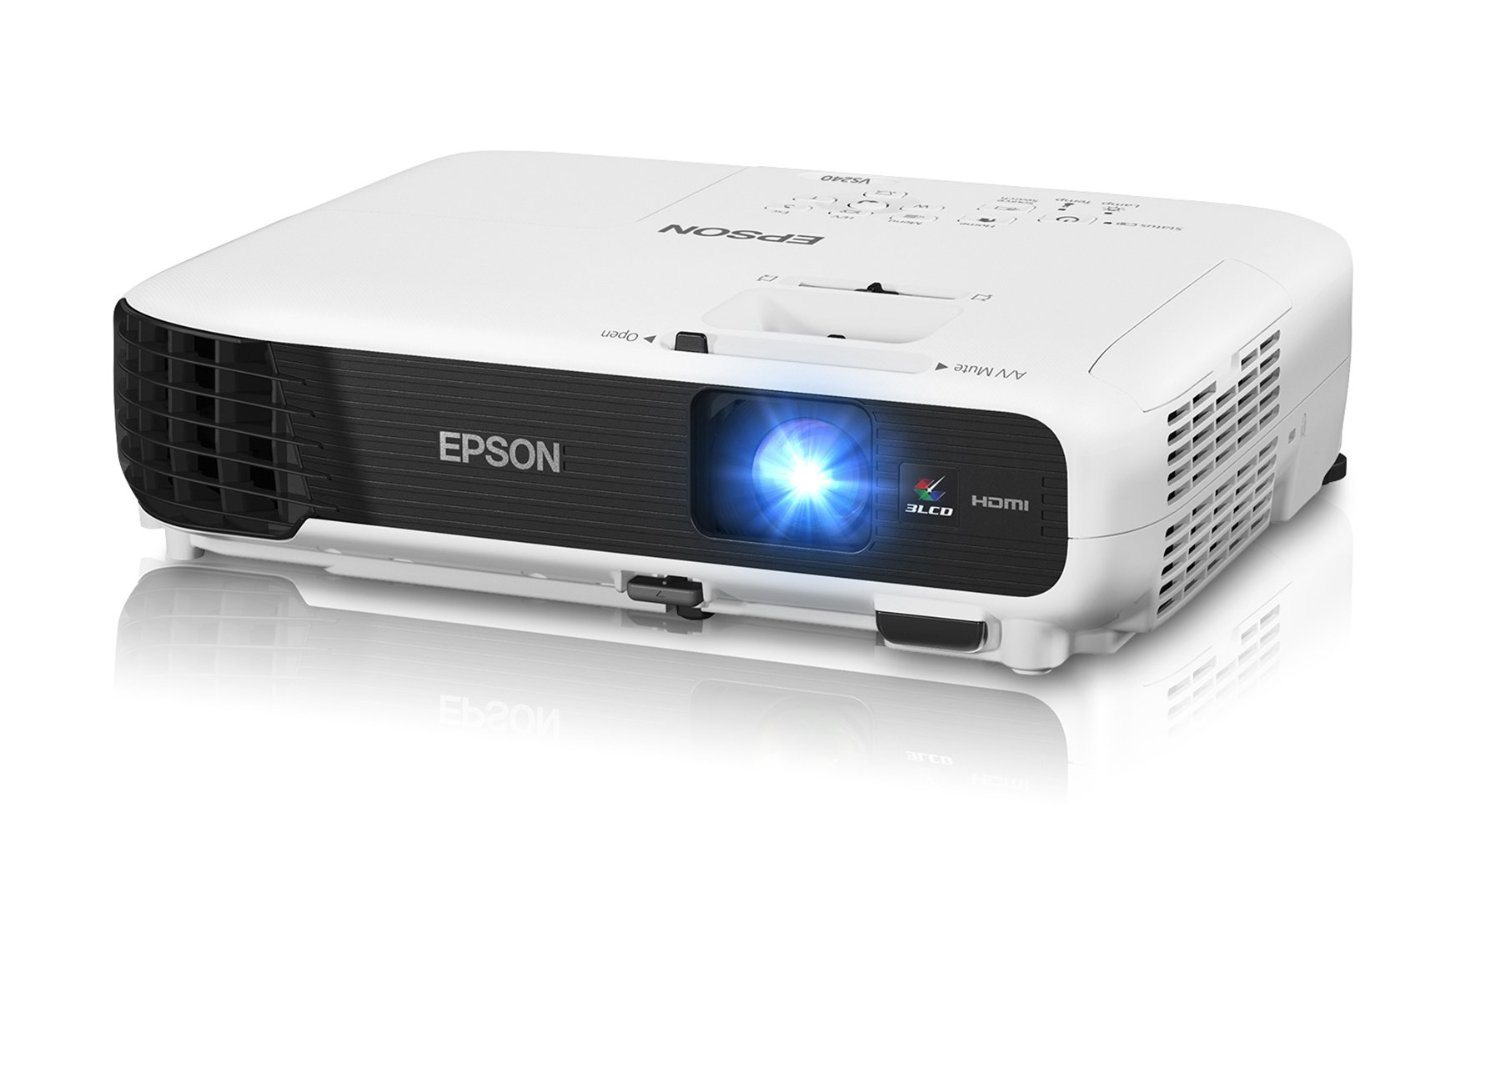 Best Epson VS230 SVGA 3LCD Projector, 2800 Lumens Color Brightness Review